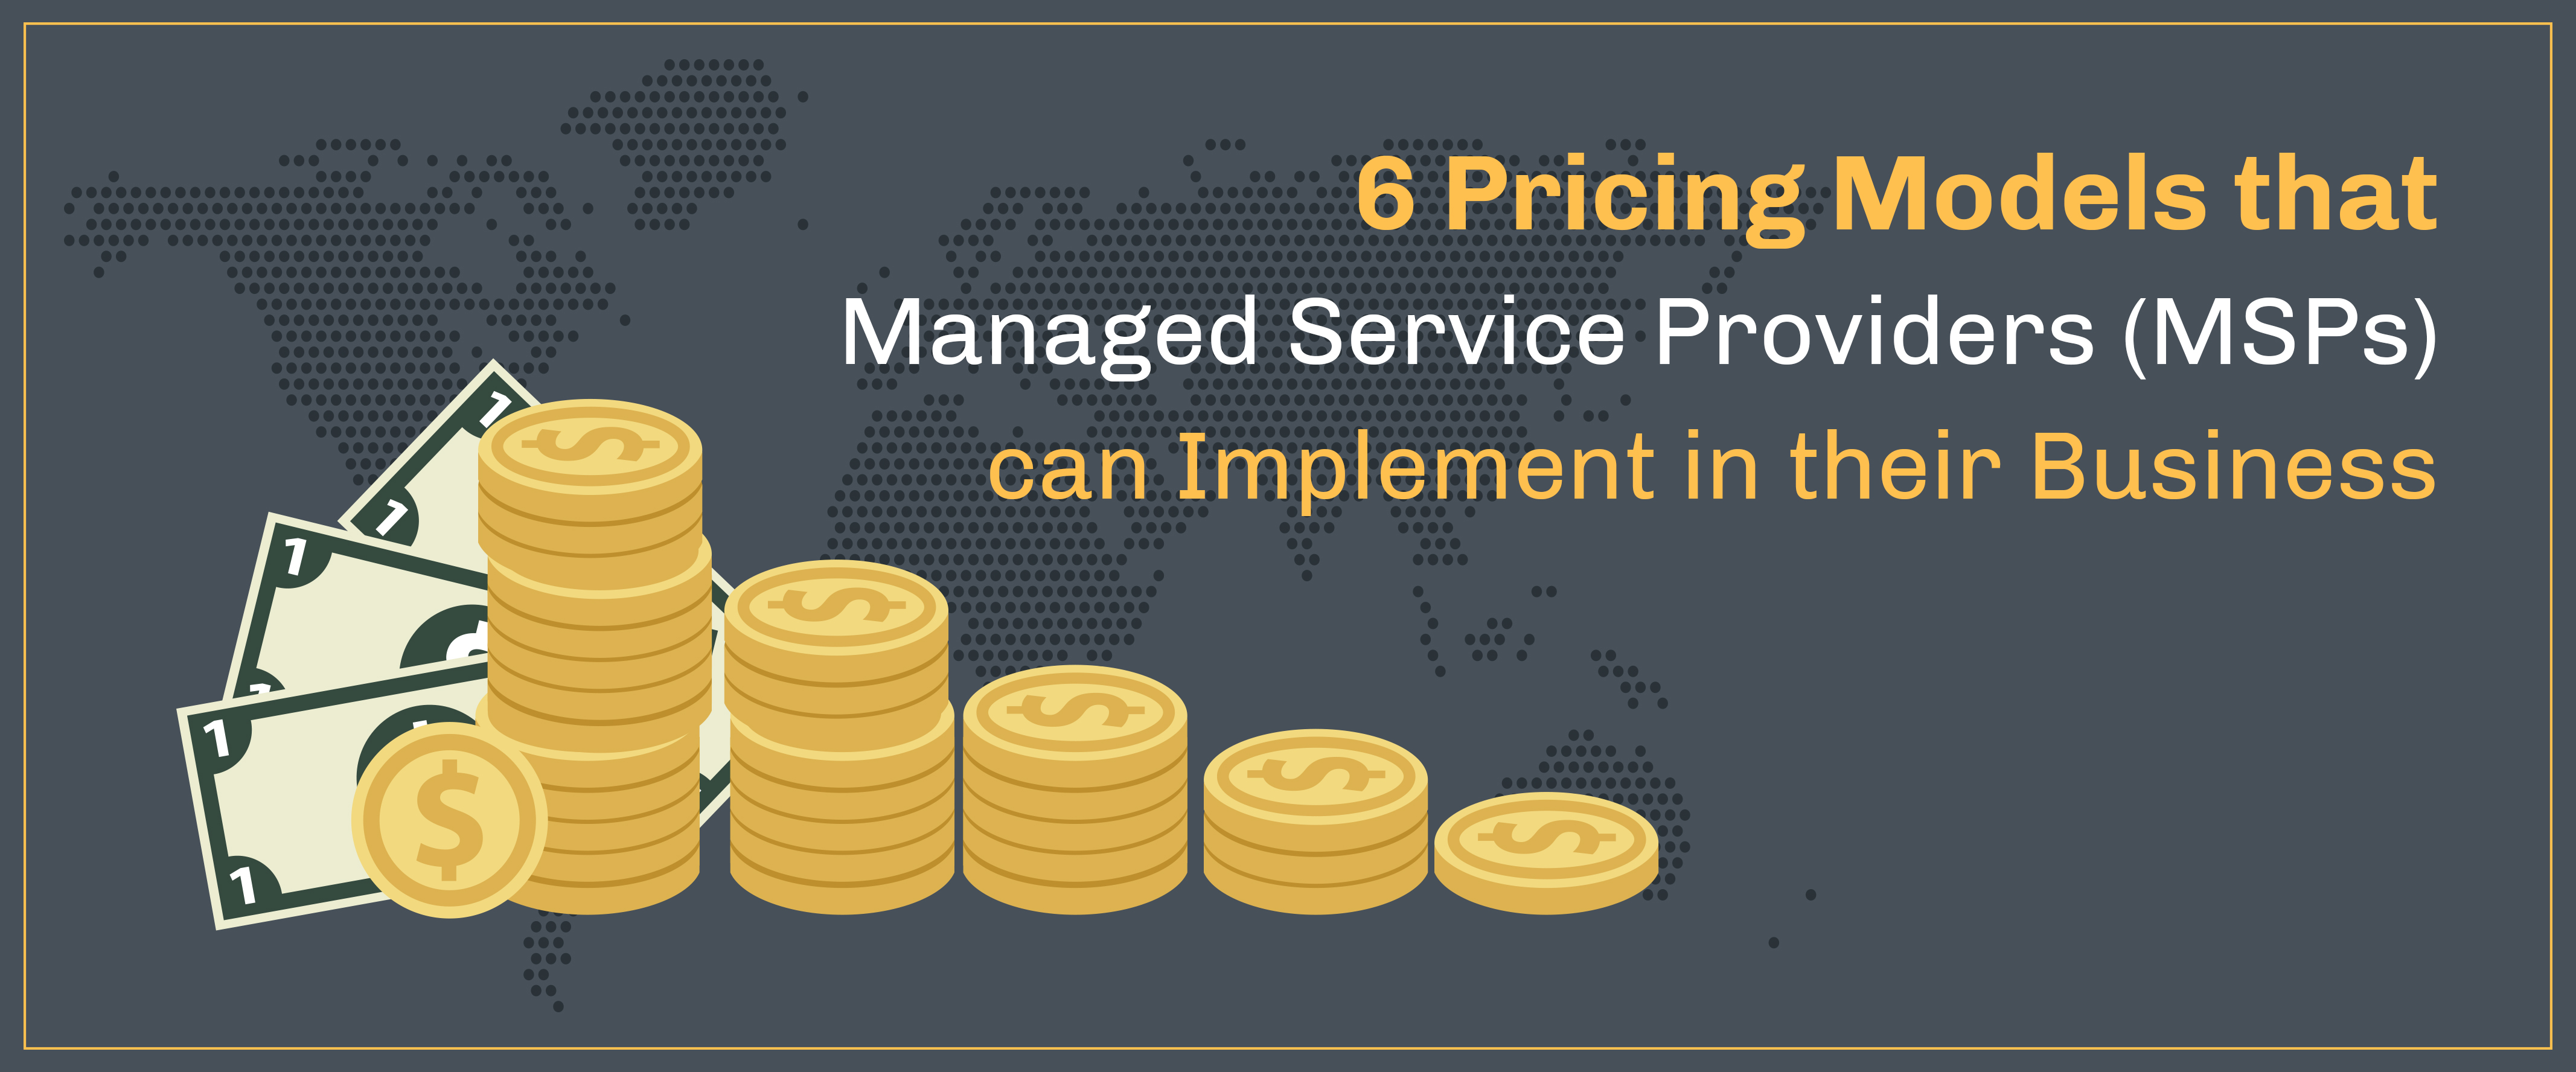 6 Pricing Models that Managed Service Providers (MSPs) can Implement in their Business